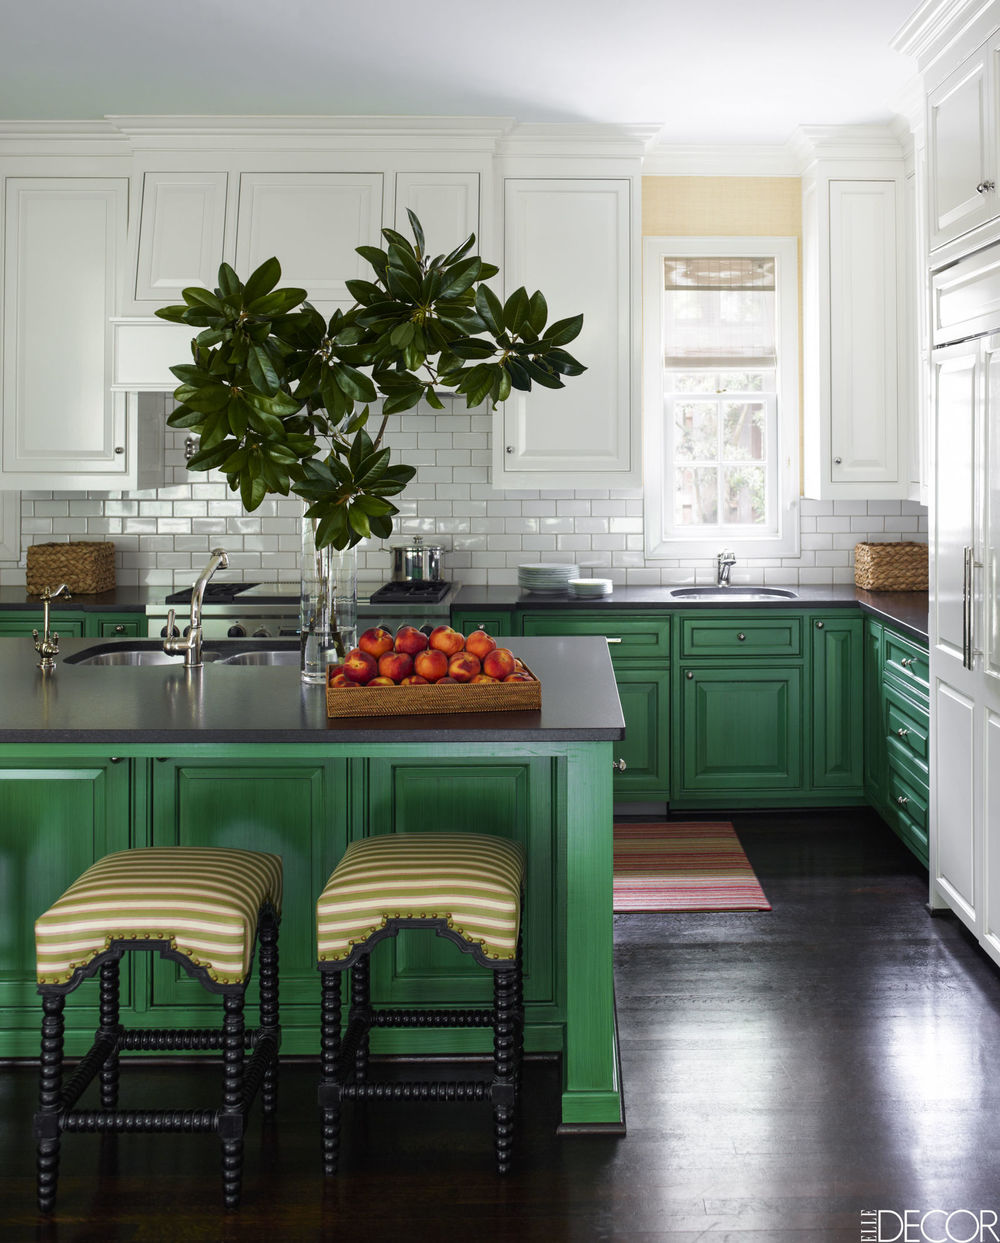 This kitchen feels like a green velvet cupcake with cream cheese frosting. Now that's friendly!   Design by J. Randall Powers, Elle Decor July 2016, Photo credit  Eric Piasecki